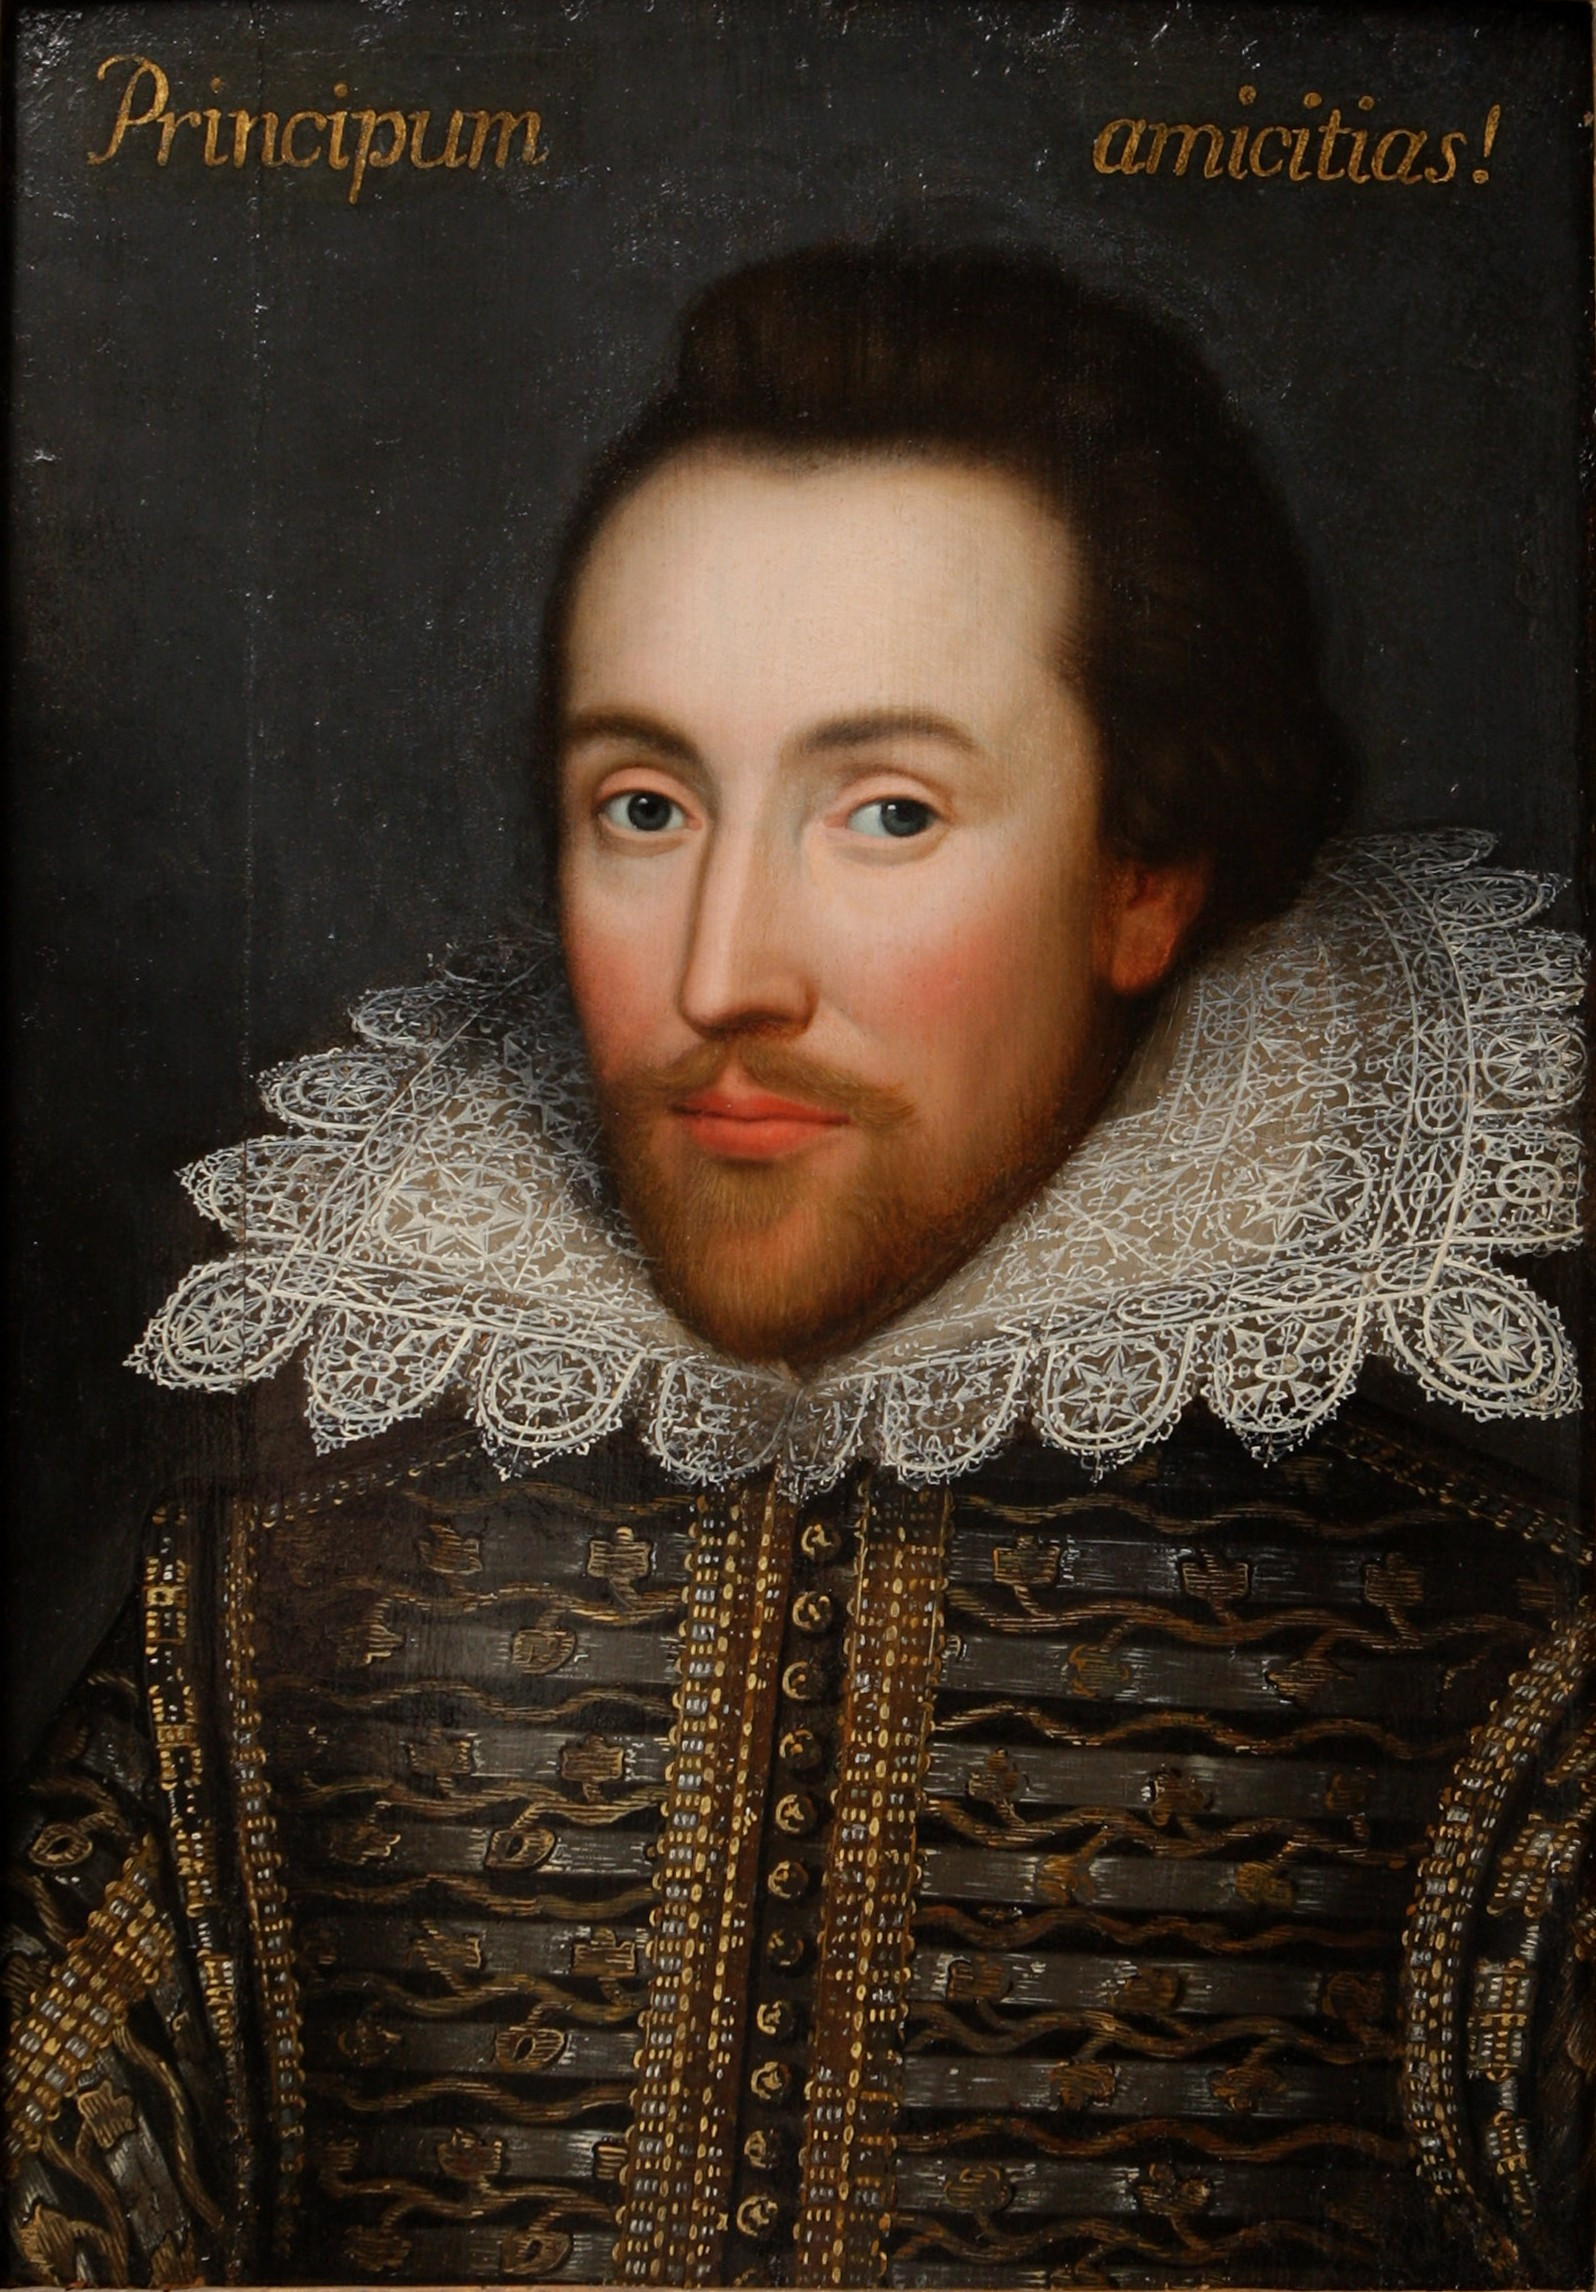 William Shakespeare (Foto: Hatchlands Park, via Wikimedia Commons)